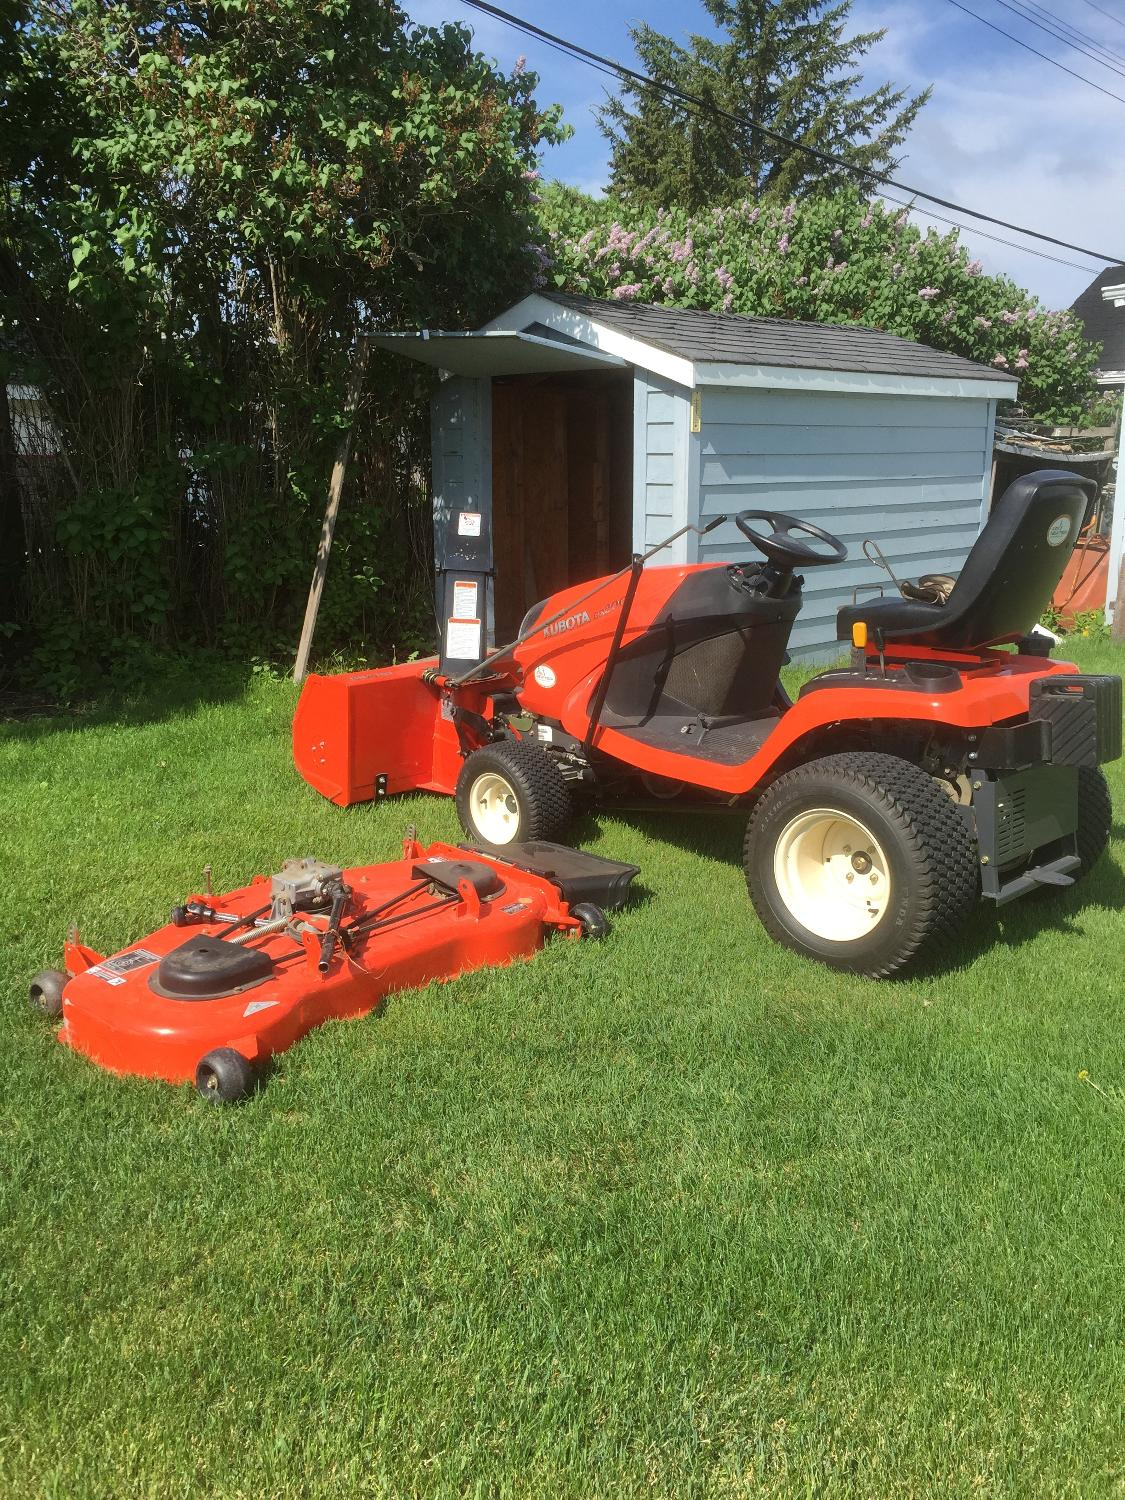 Best Kubota Lawn Tractor For Sale For Sale In Winkler Manitoba For 2020